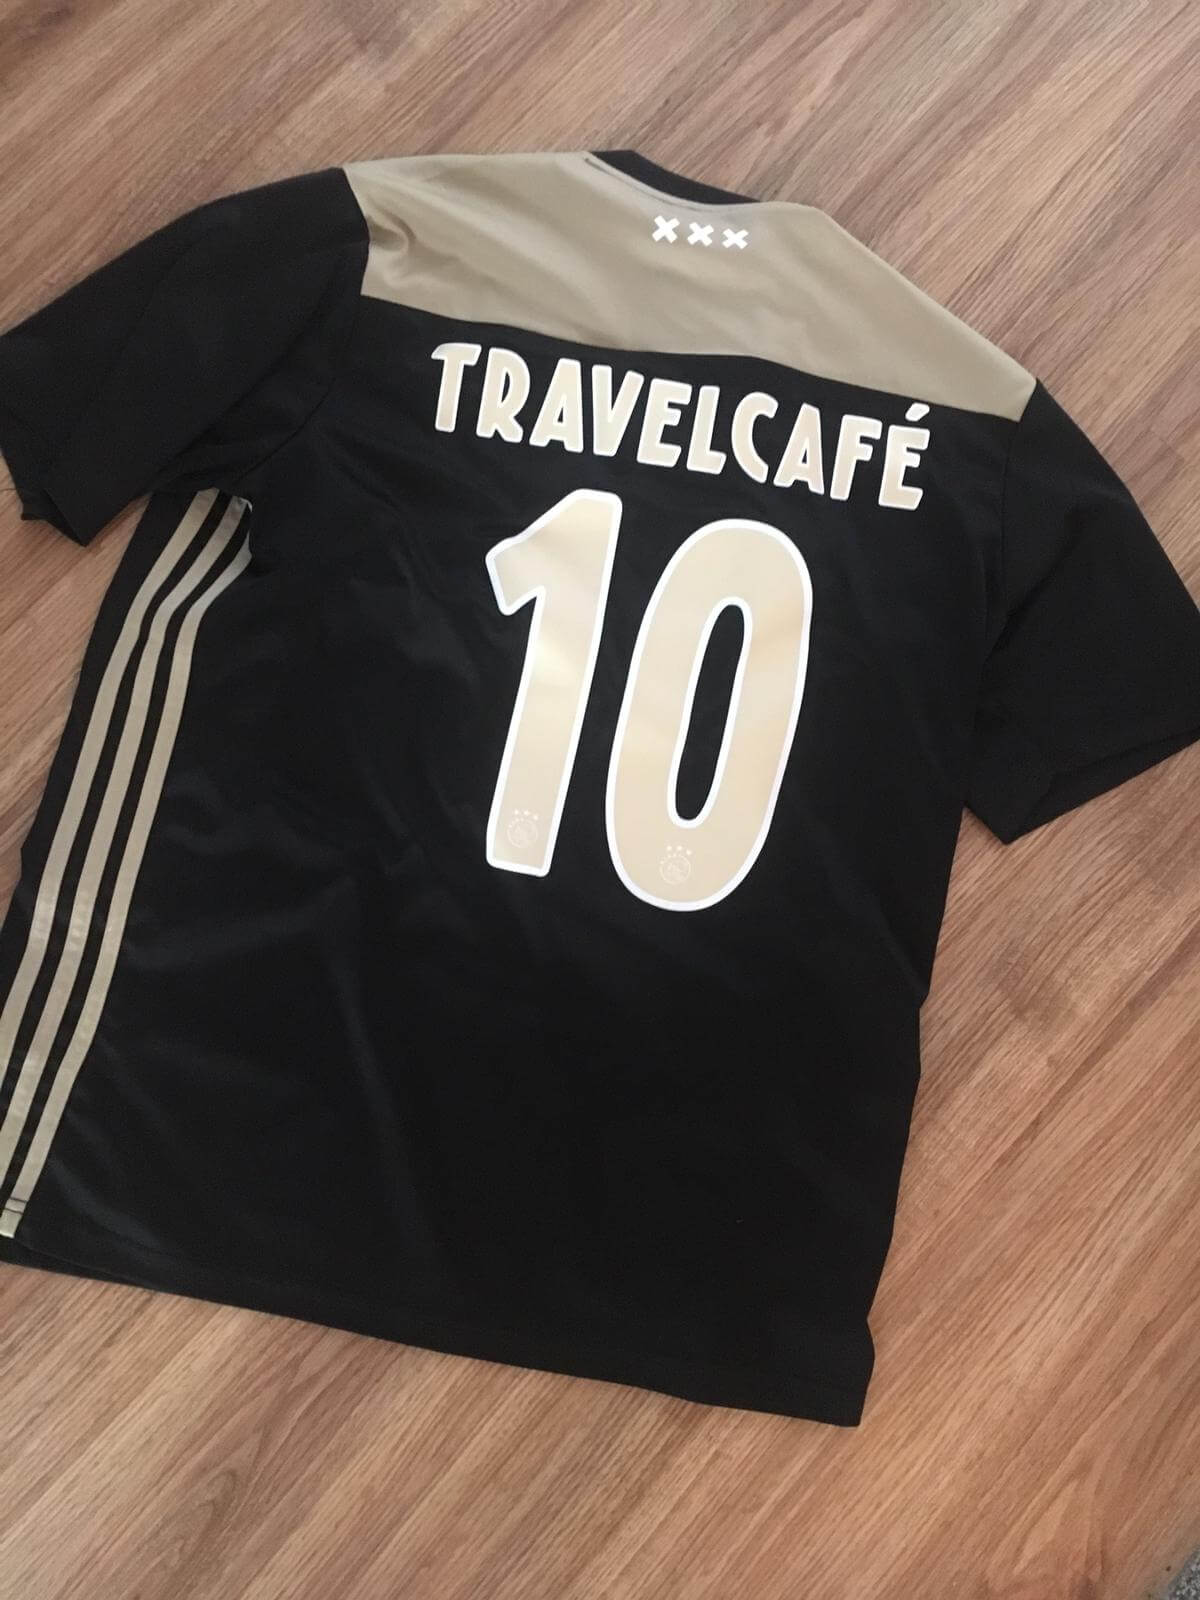 Amsterdam-Travelcafe-jersey-shirt